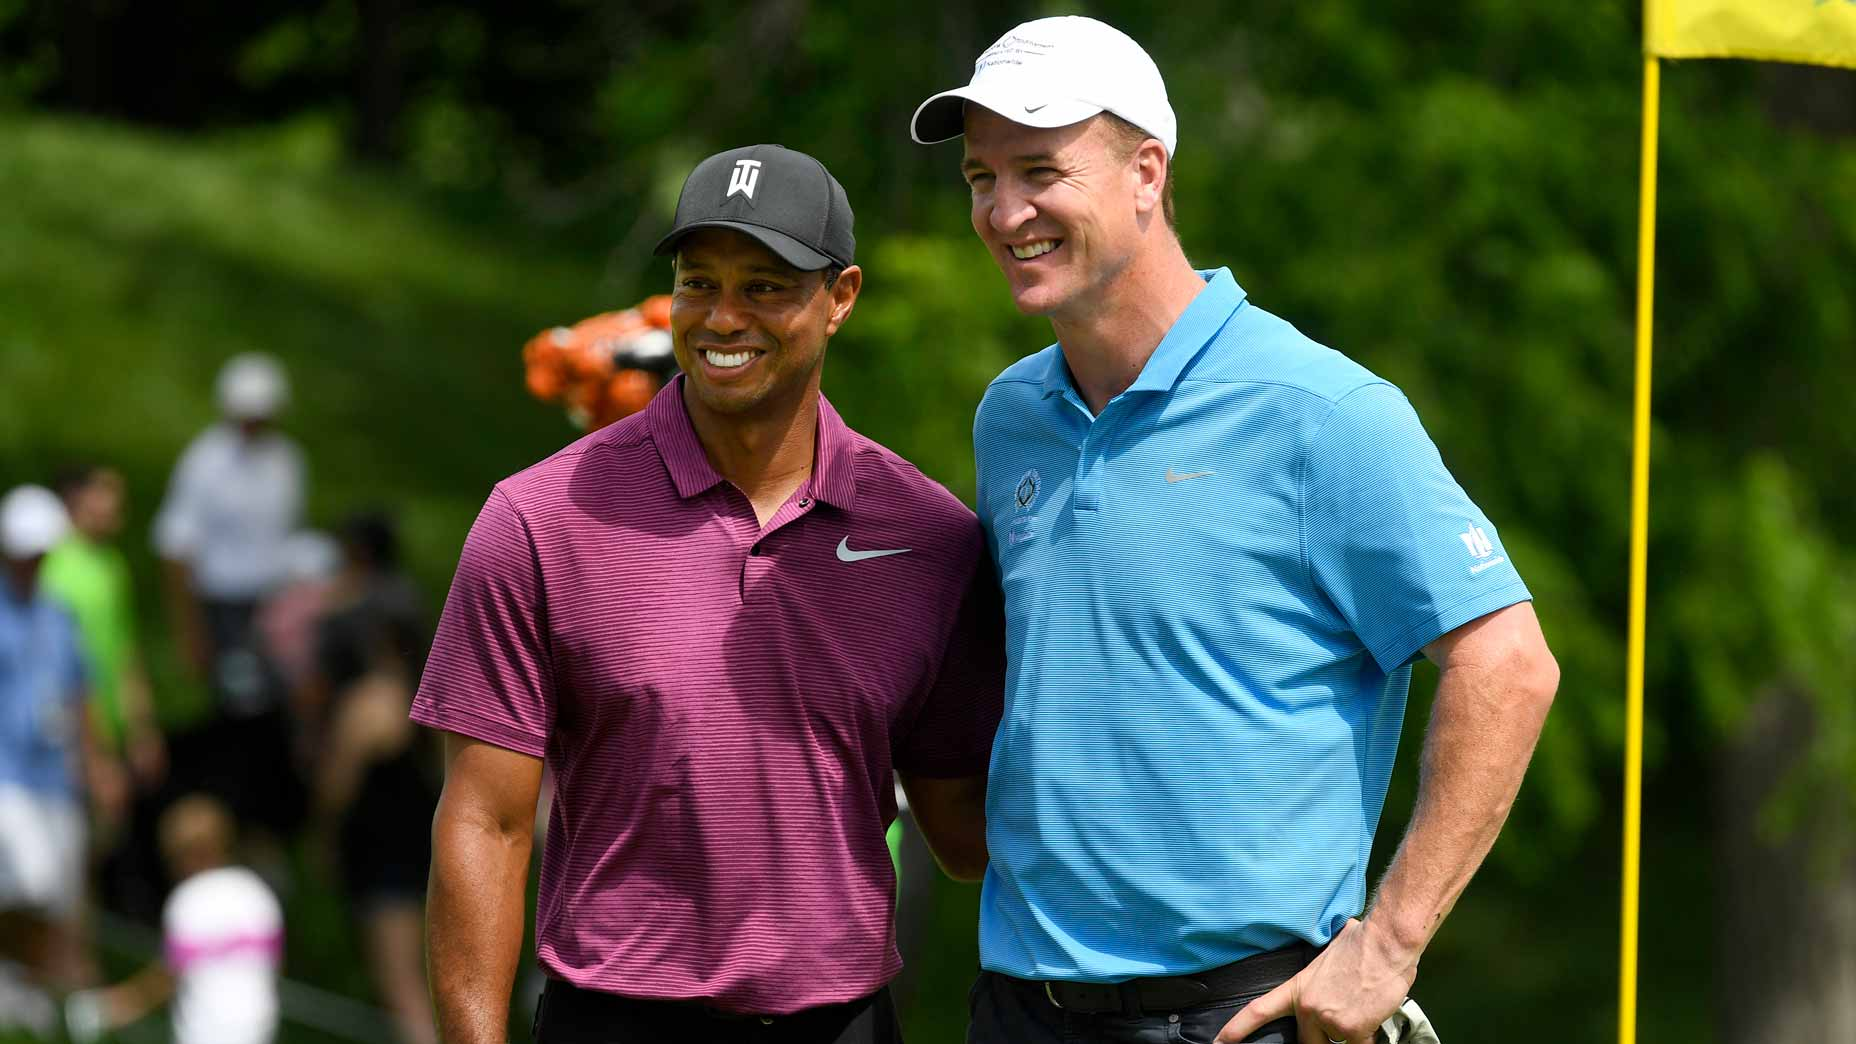 Tiger Woods and Peyton Manning on golf green